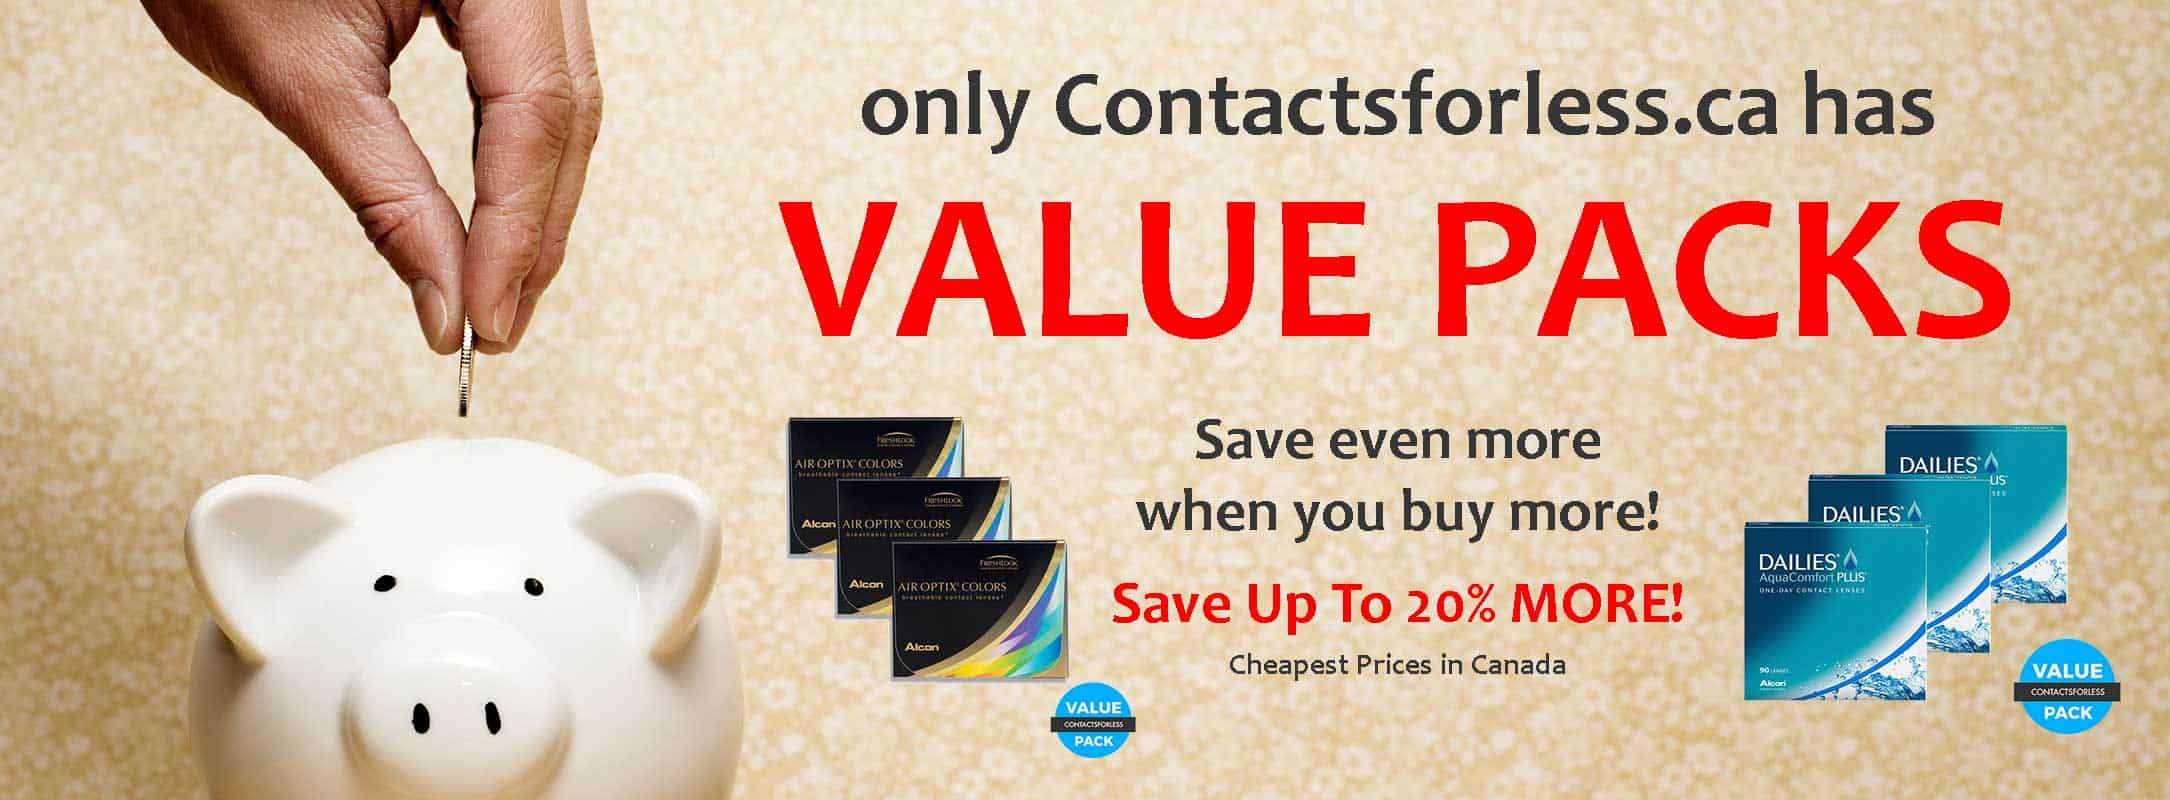 Value Packs on contact lenses in Canada